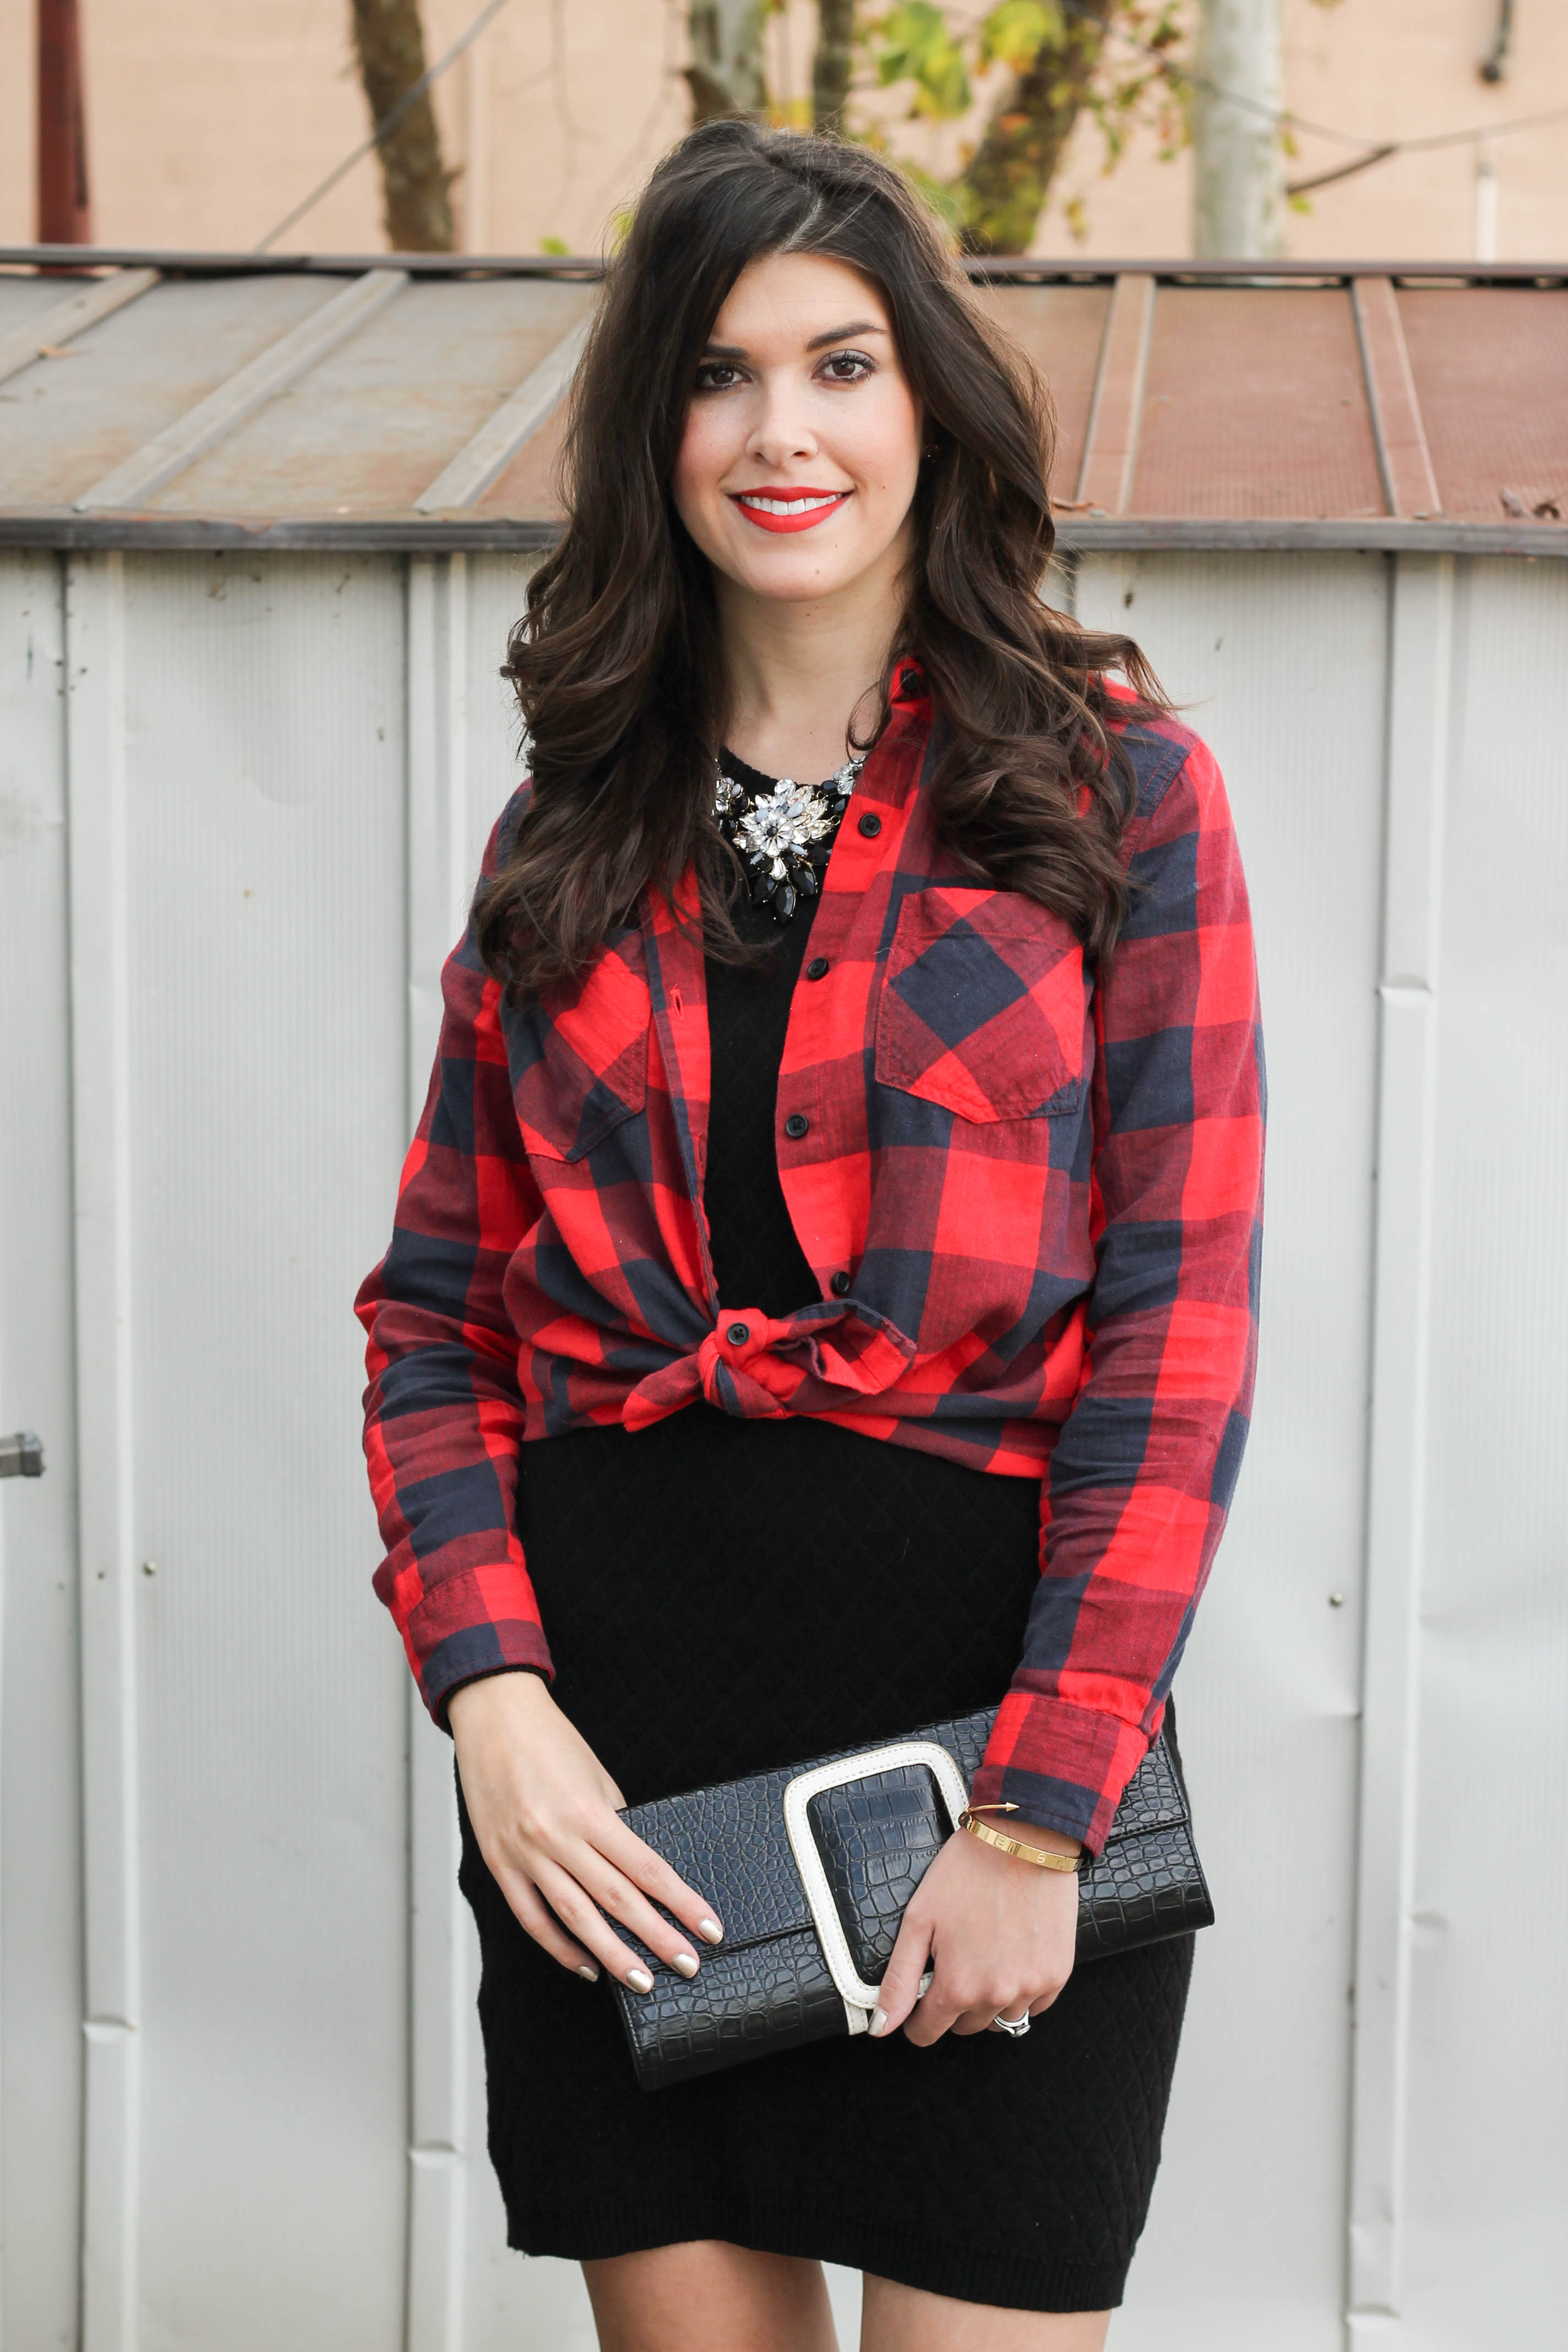 2015-12-06 13.30.23  Holiday Glam + Buffalo Red Plaid Shirt by New York fashion blogger